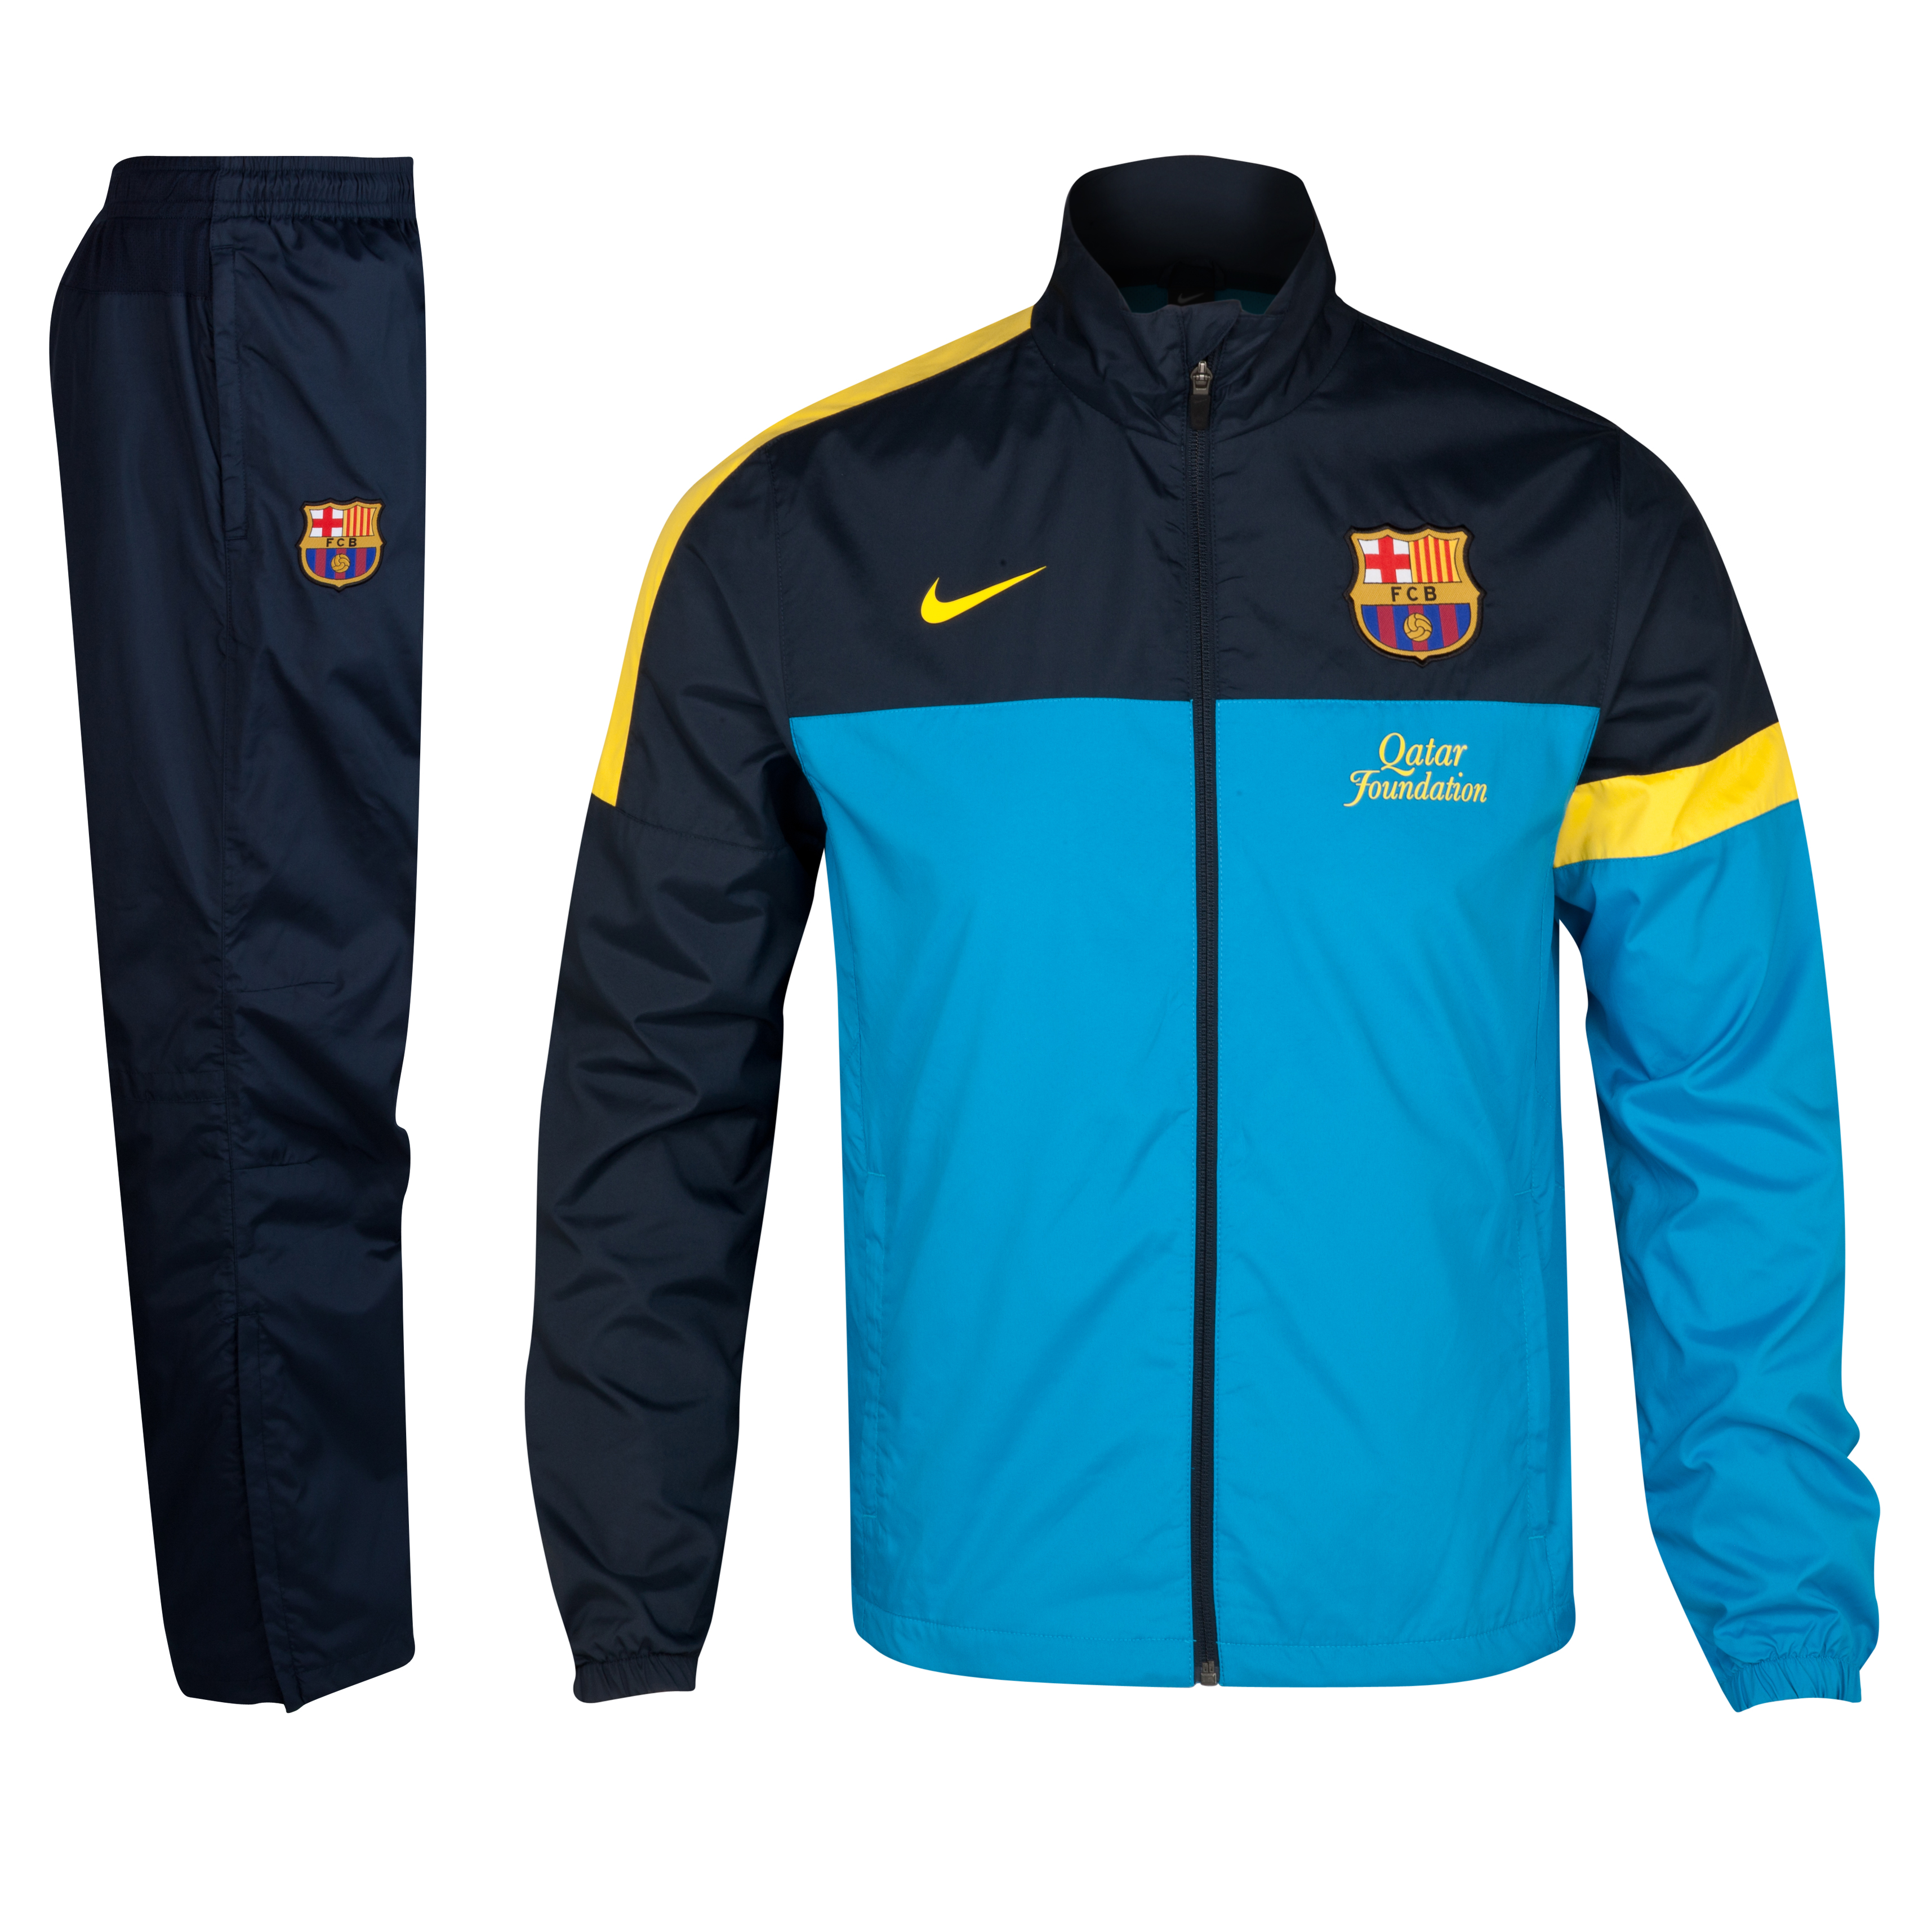 Barcelona Woven Warm-up Tracksuit - Dynamic Blue/Dark Obsidian/Tour Yellow